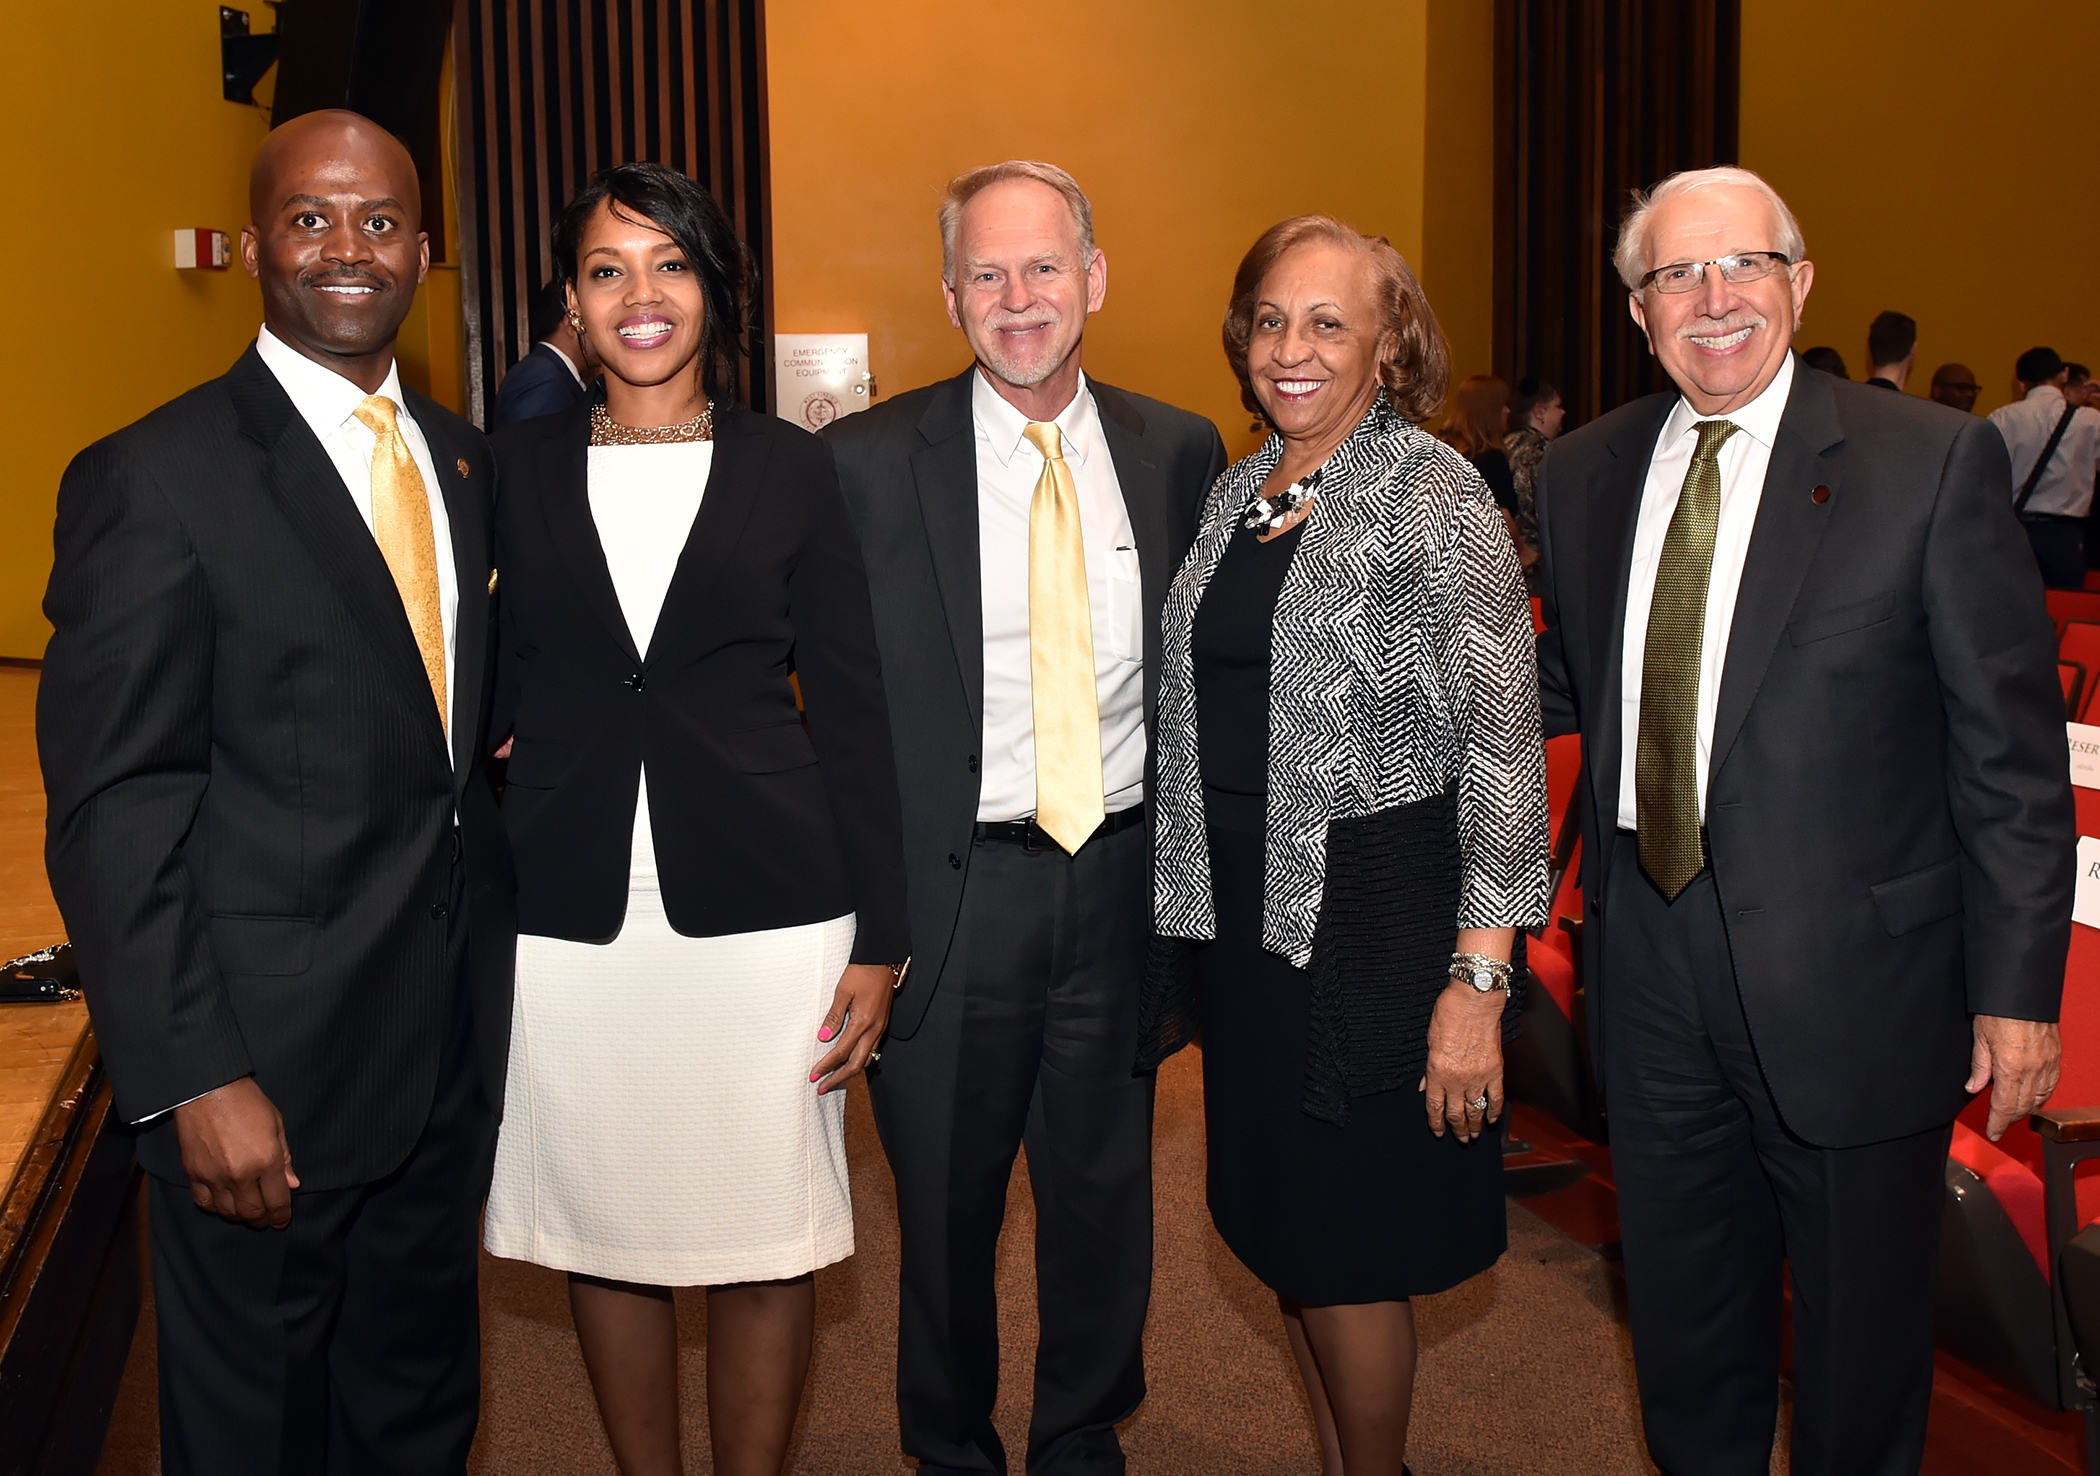 WVSU BOG Members and WV HEPC Chancellor pause with President and First Lady Jenkins